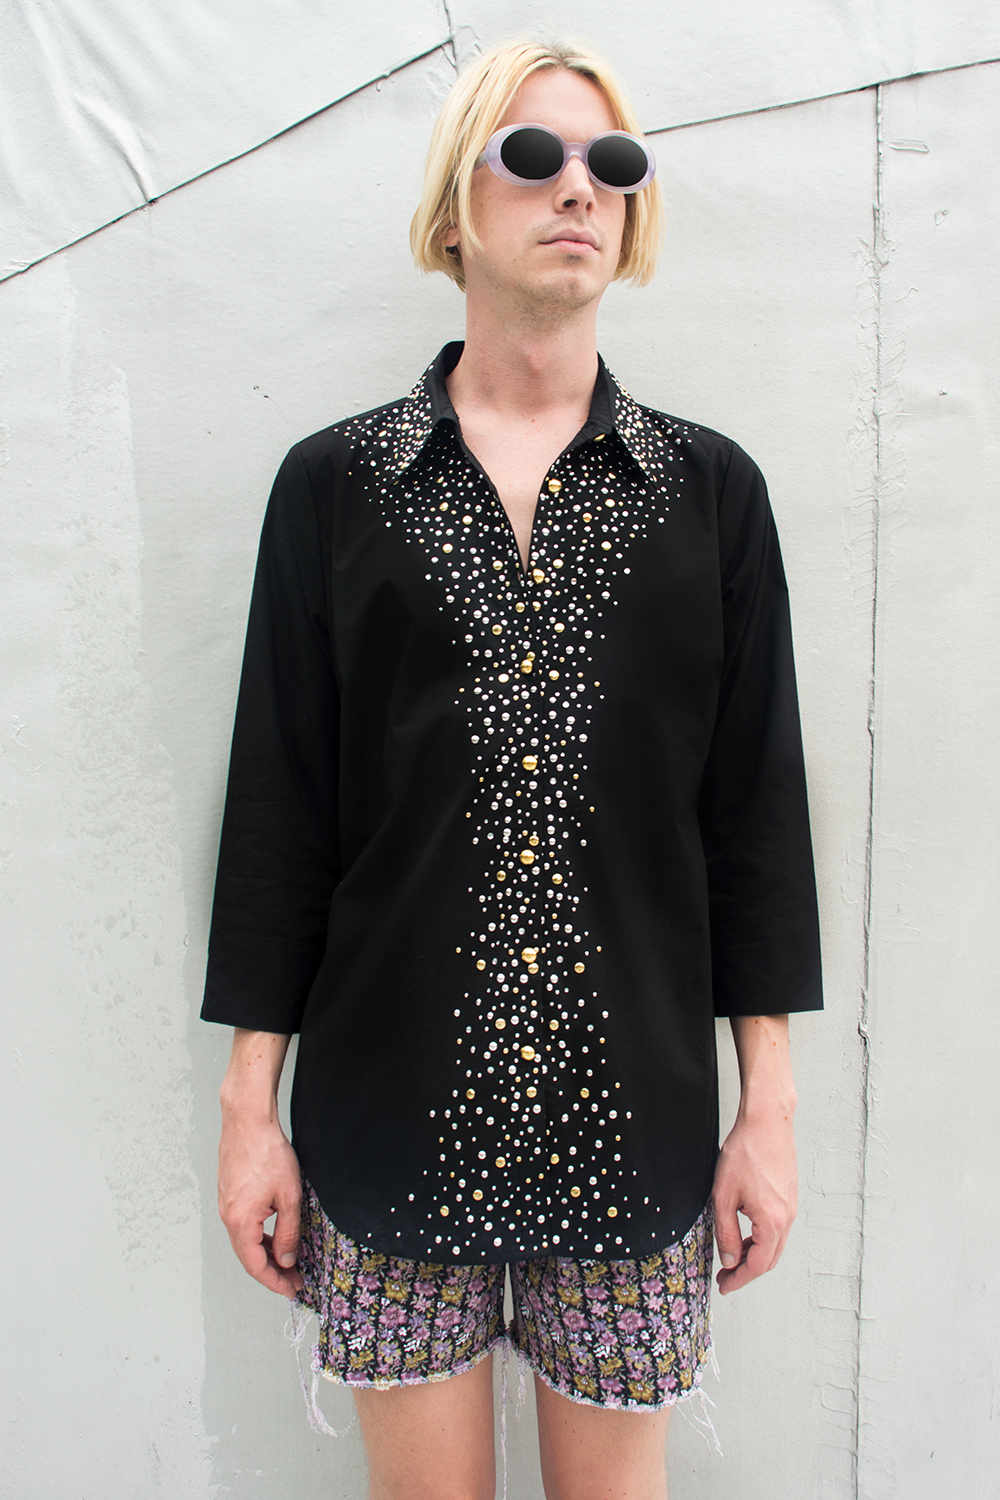 vintage Joan rivers shirt with embellishments